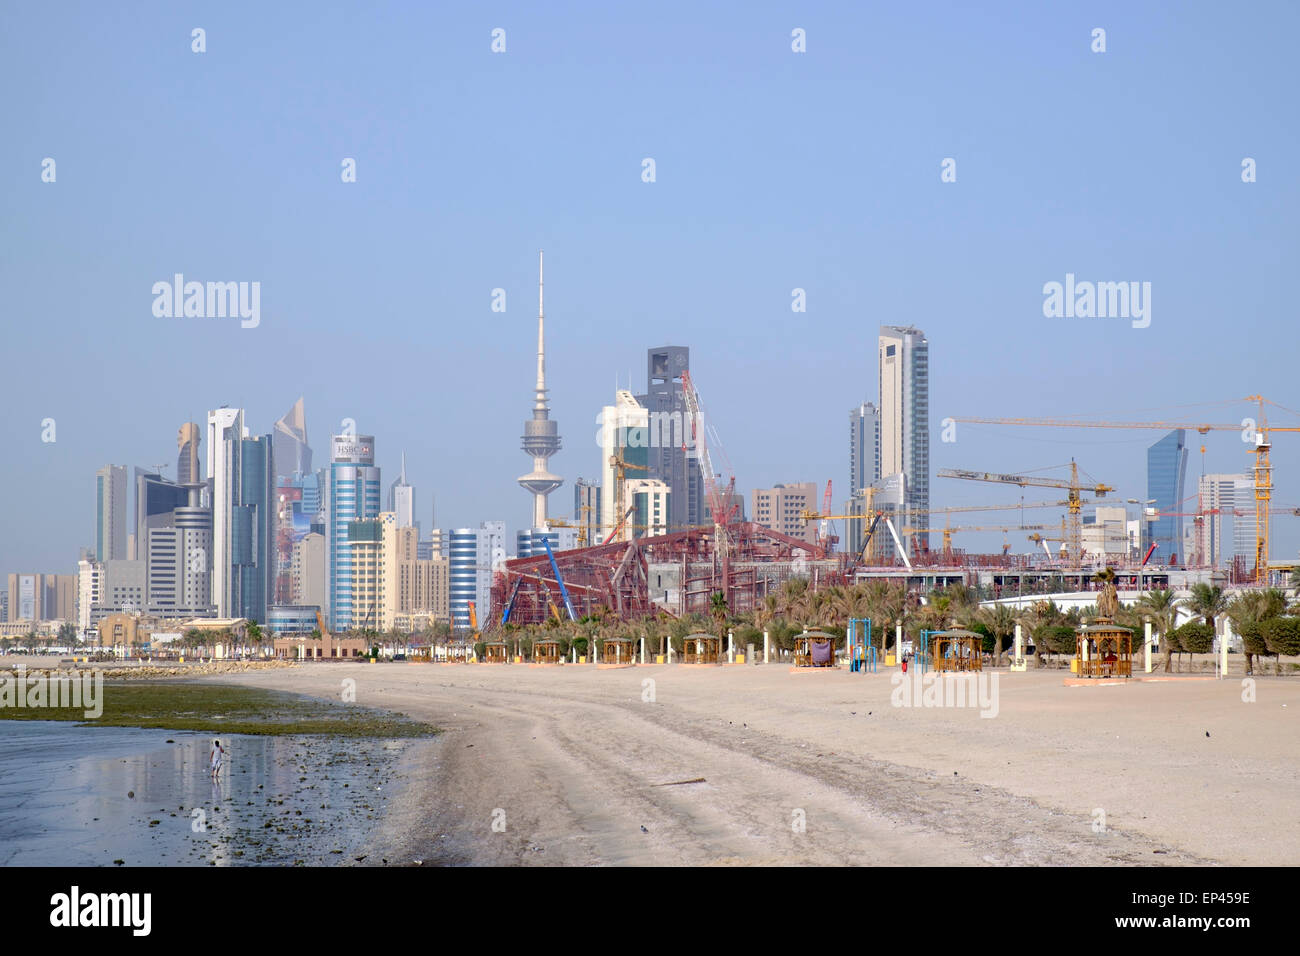 Skyline of central Kuwait City  in Kuwait - Stock Image